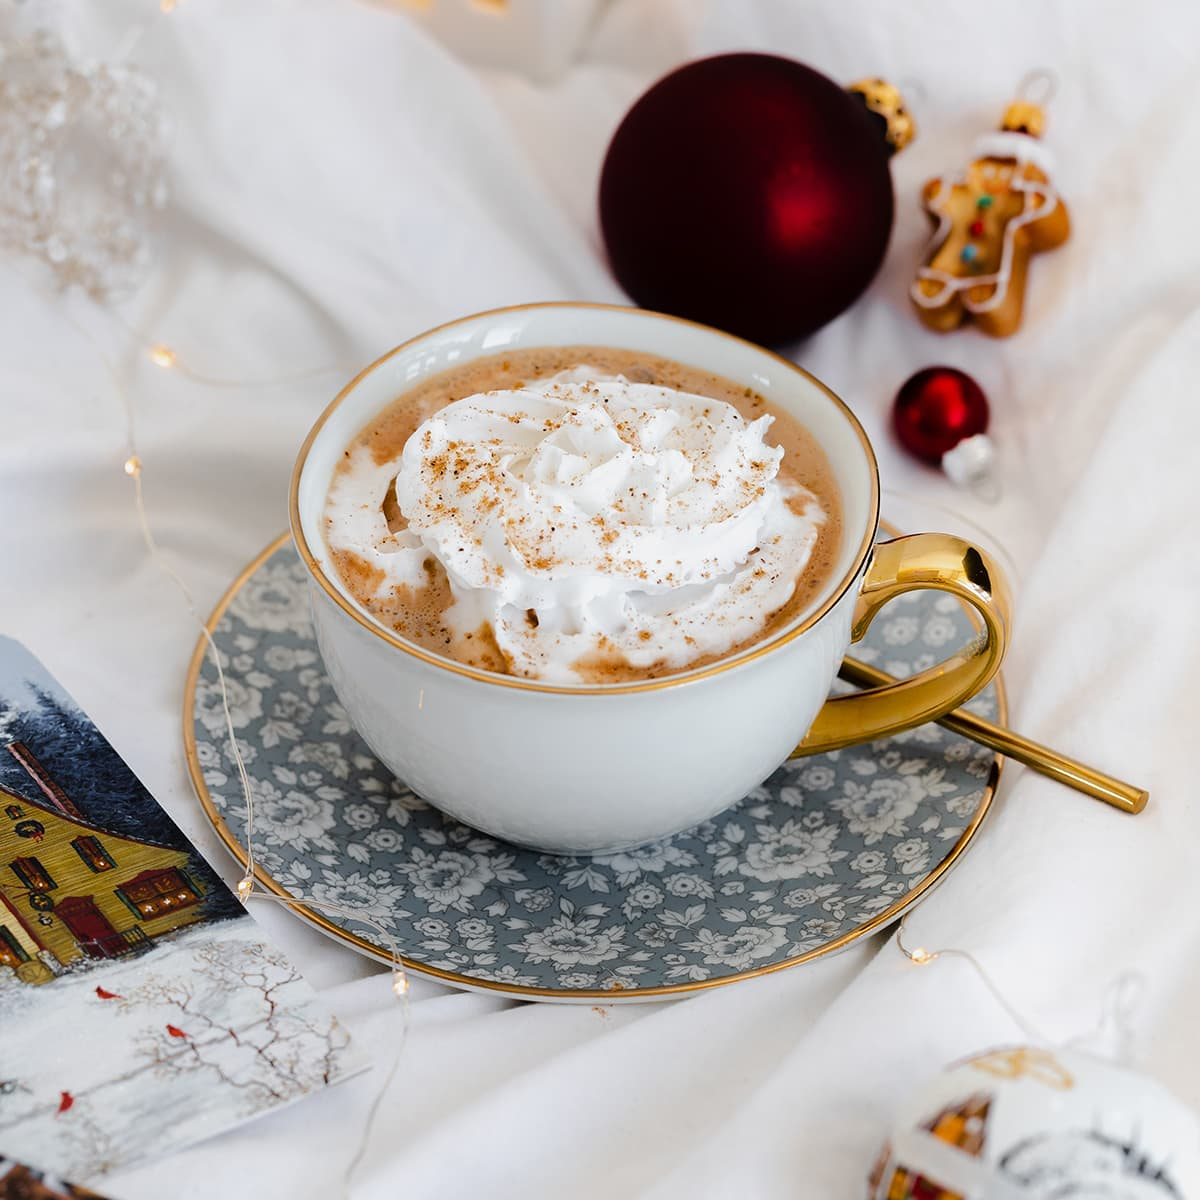 Vegan Eggnog Mocha with whipped cream and a sprinkle of nutmeg in a white mug on white bedsheets.